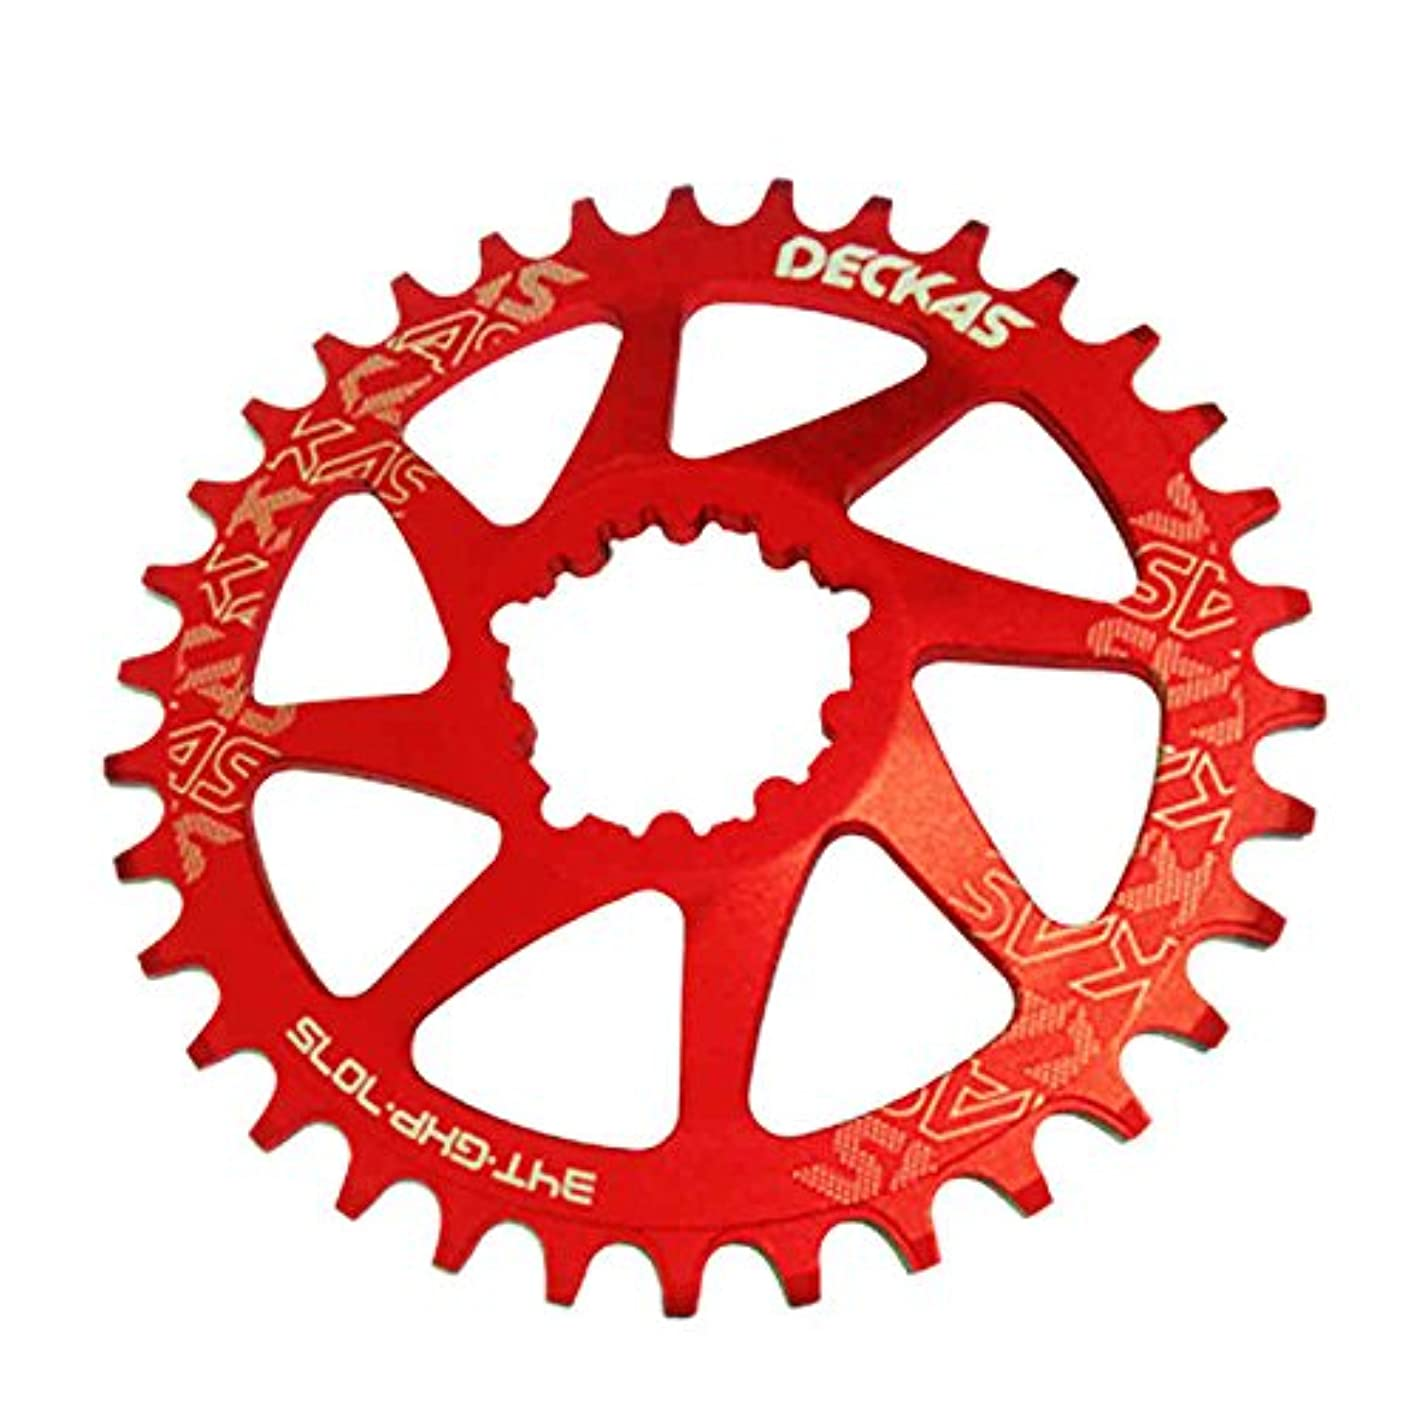 忌避剤こどもの日ベックスPropenary - GXP bicycle crankset Al 7075 CNC32T 34T Narrow Wide Chainring Chainwheel for Sram XX1 XO1 X1 GX XO X9 crankset bicycle parts [ 32T Red ]